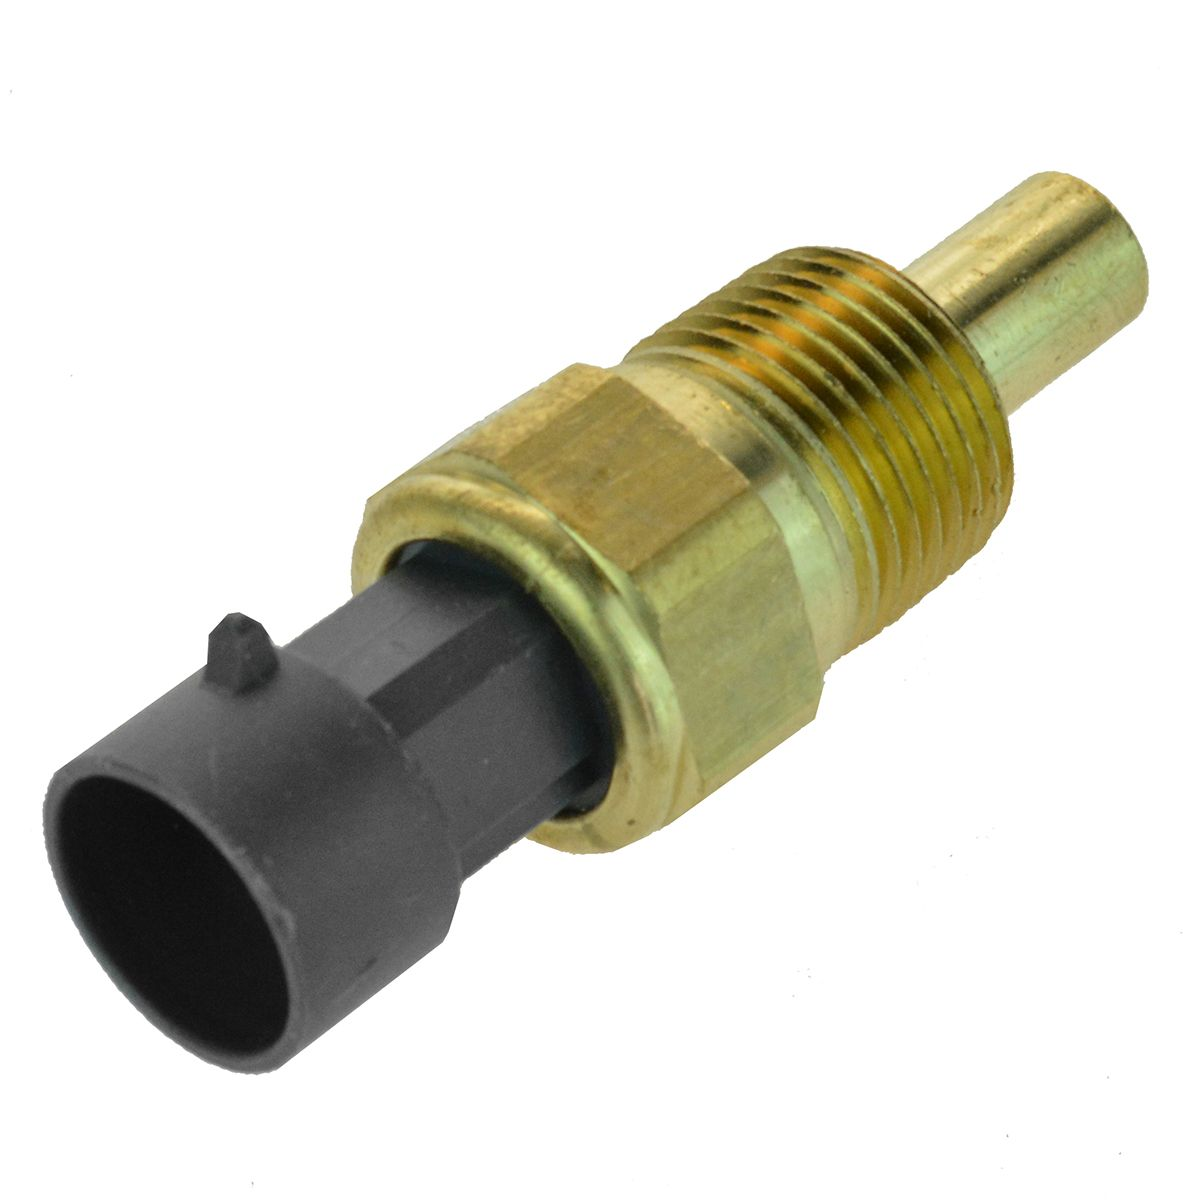 Coolant Temperature Sensor Sender 3 Pin for Chevy Pontiac Buick Oldsmobile